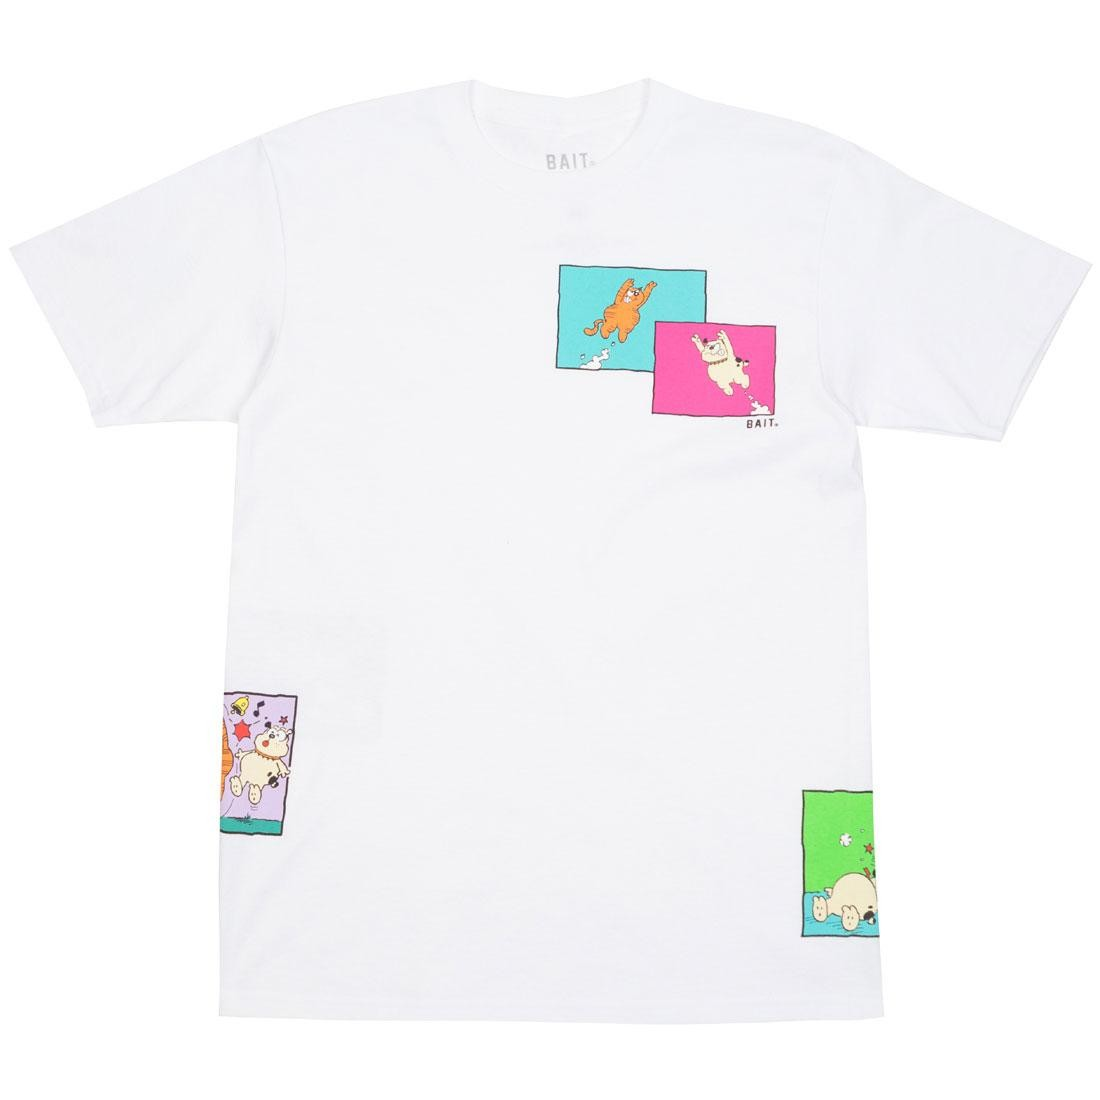 BAIT x Heathcliff Men Comic Strip Tee (white)